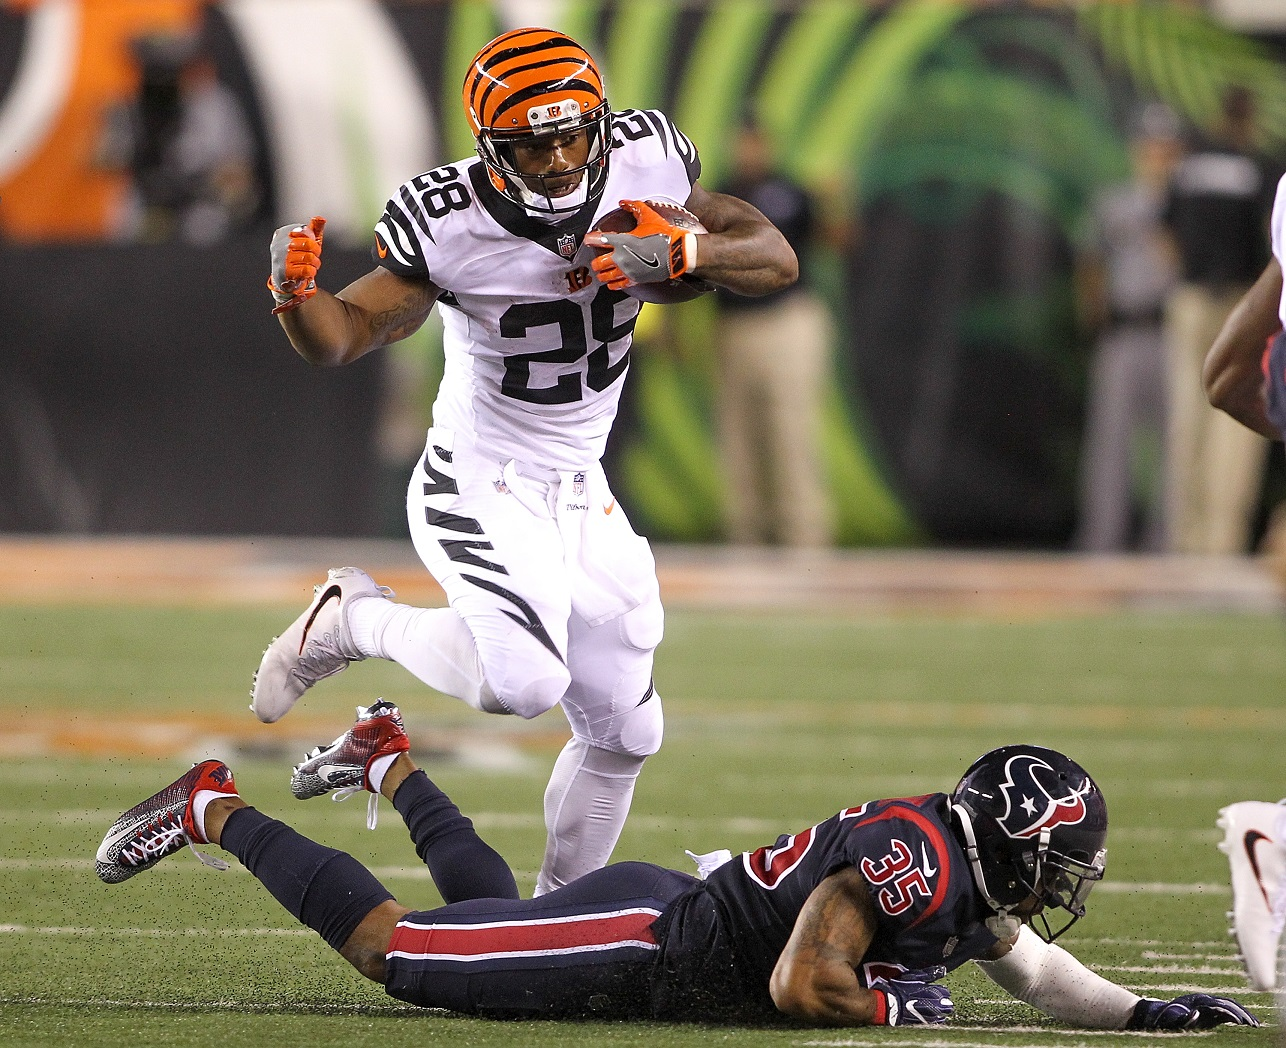 Bengals' special season starts 0-3, winless Browns up next